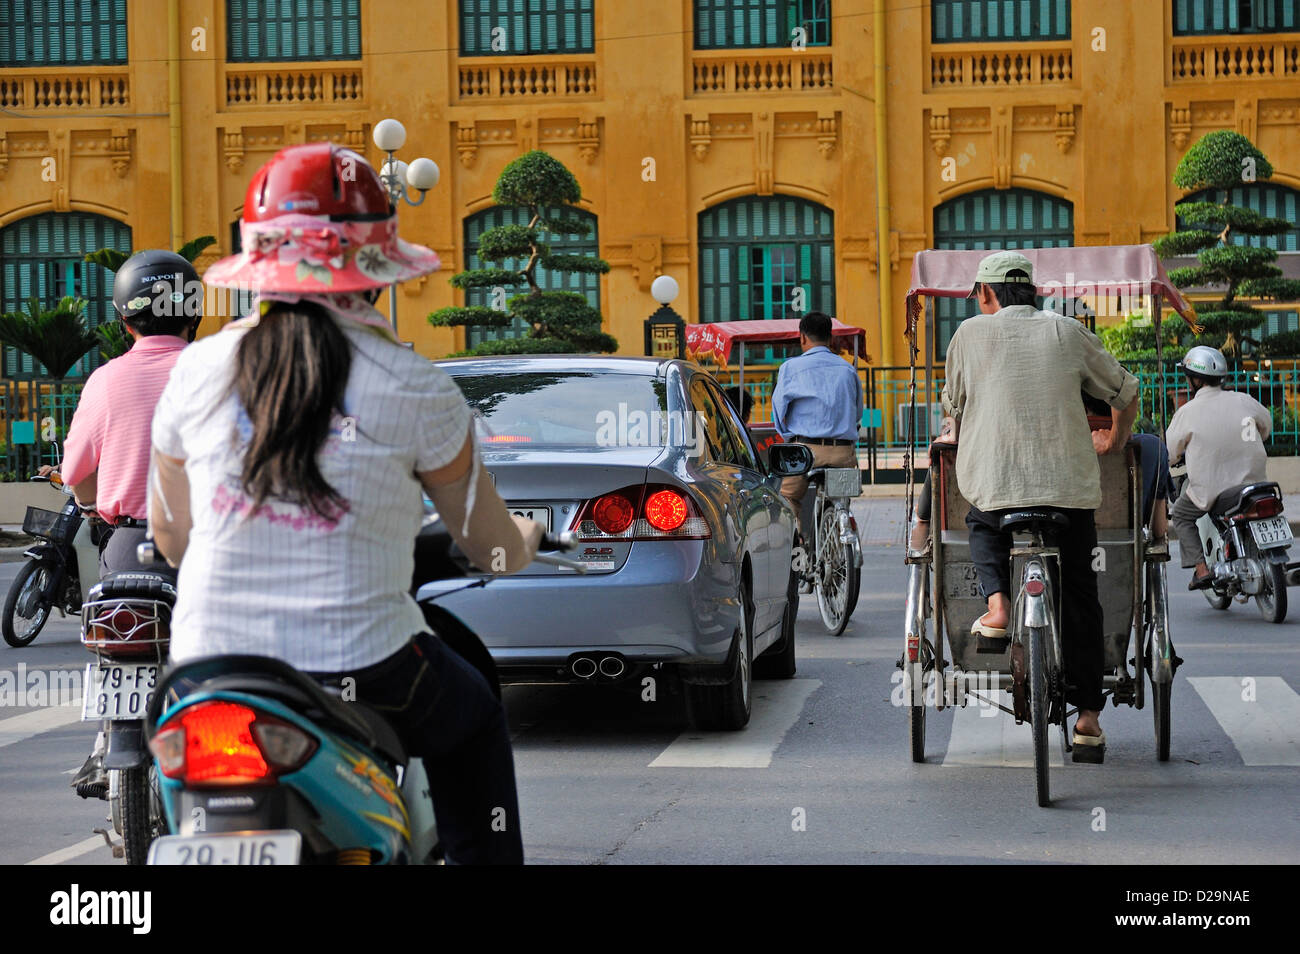 Traffic in downtown Hanoi, Vietnam - Stock Image